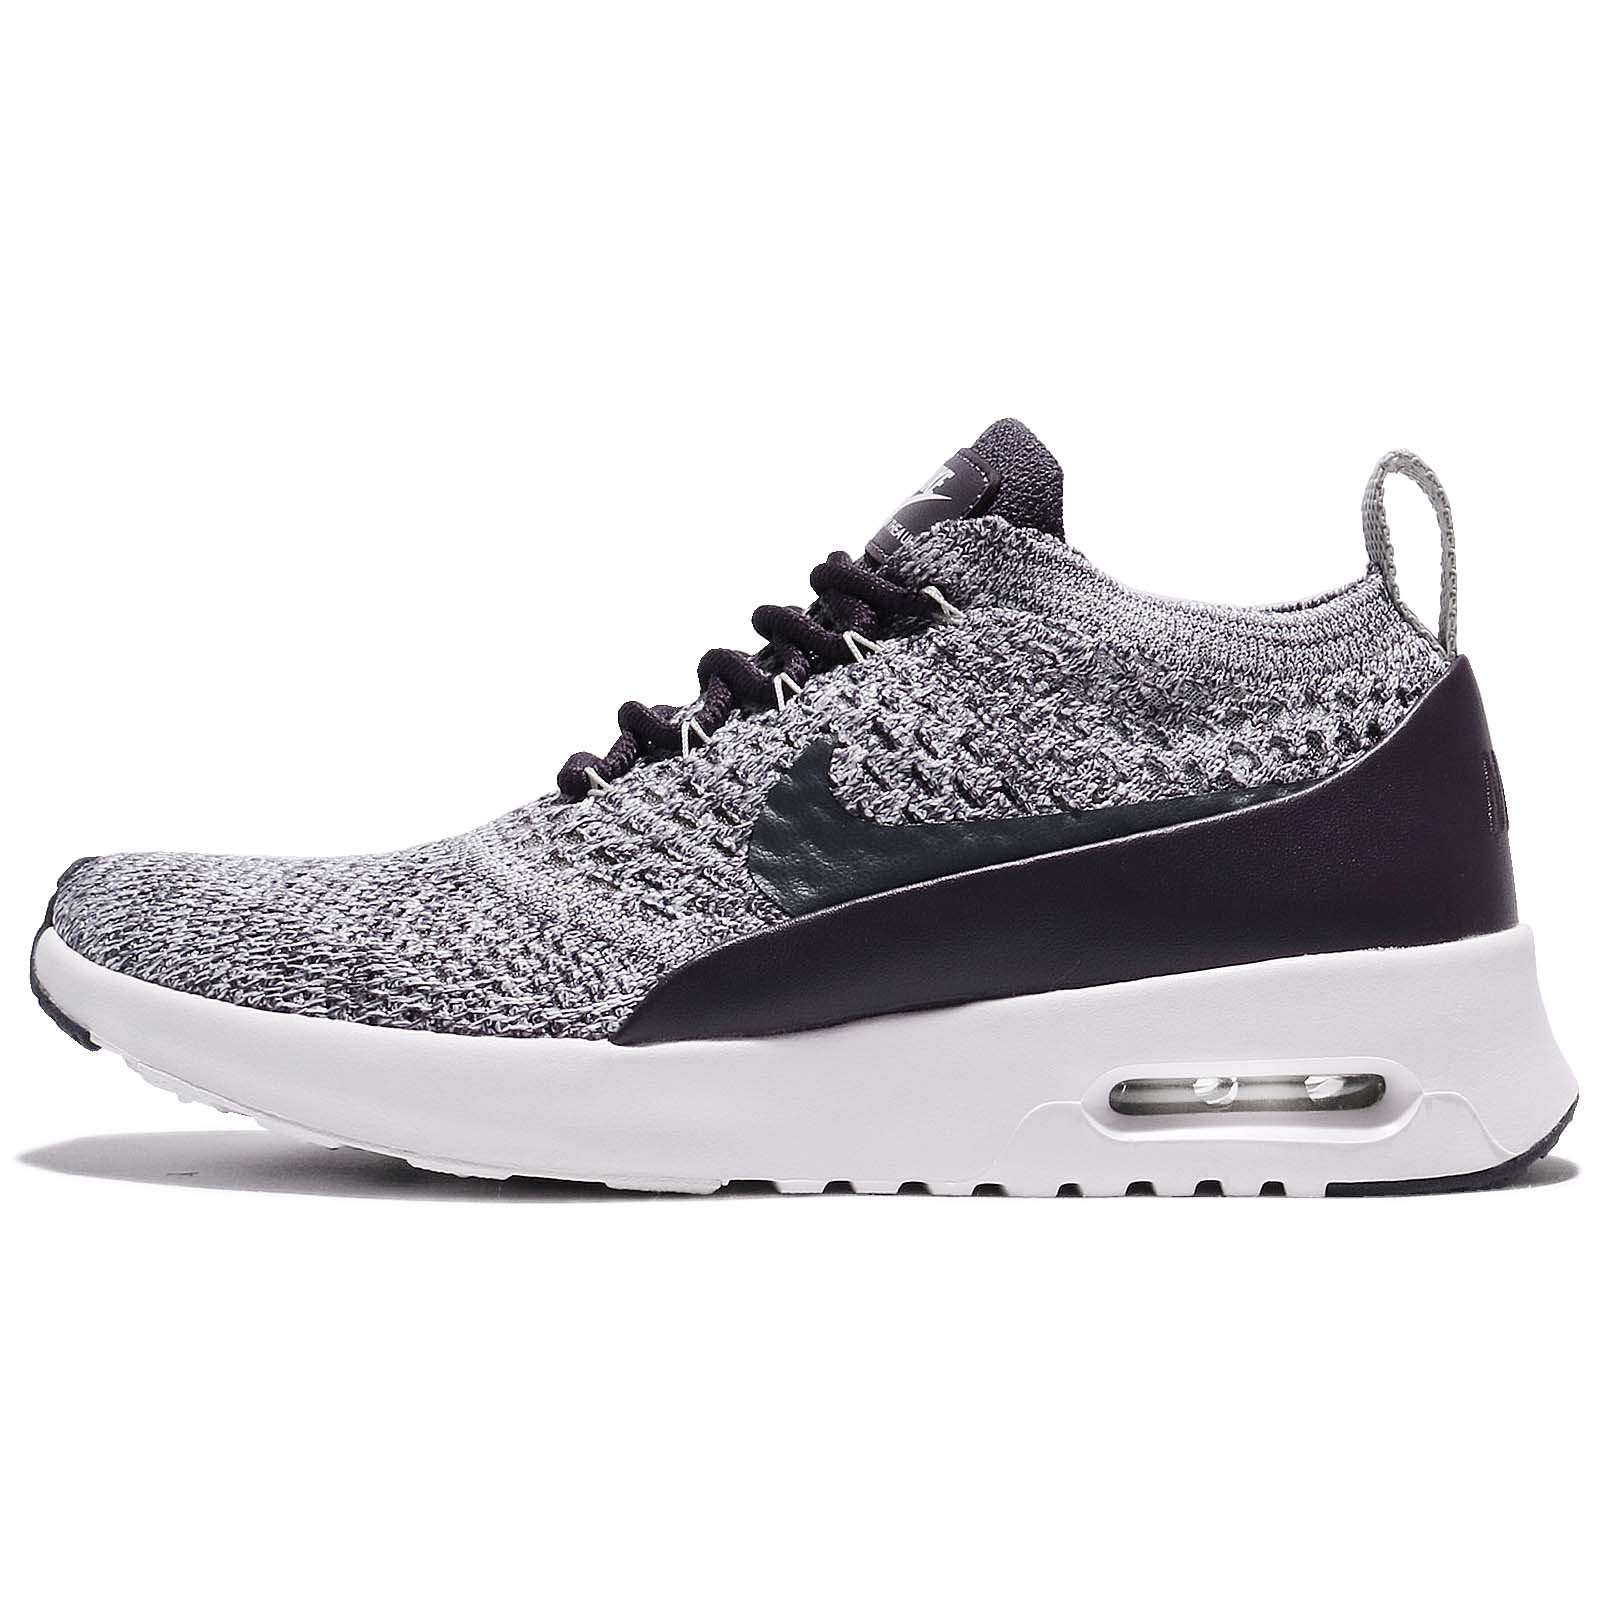 Nike Air Max Thea Ultra Fk Womens Running Trainers 881175 Sneakers Shoes (UK 5 US 7.5 EU 38.5, Dark Raisin White 500)